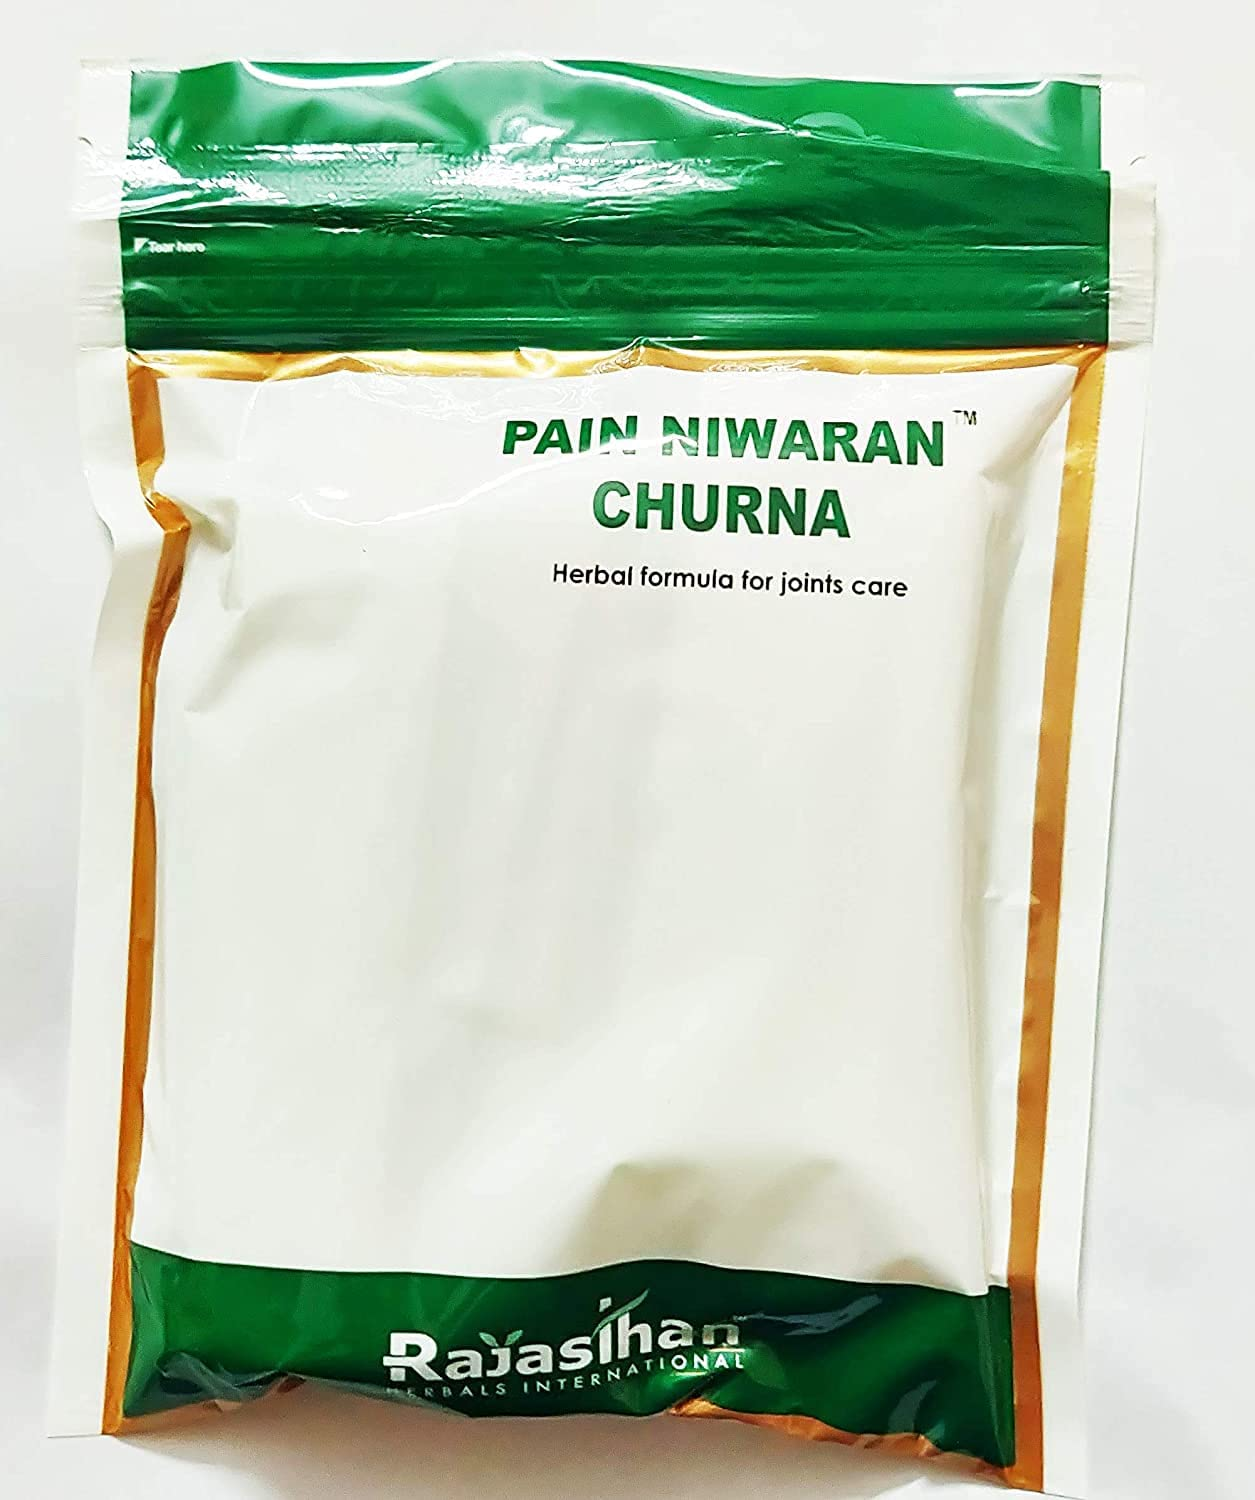 Spare Spring new work one after another Inventory cleanup selling sale Rajasthan herbals Pain Niwaran Yellow 135g Pack Churna